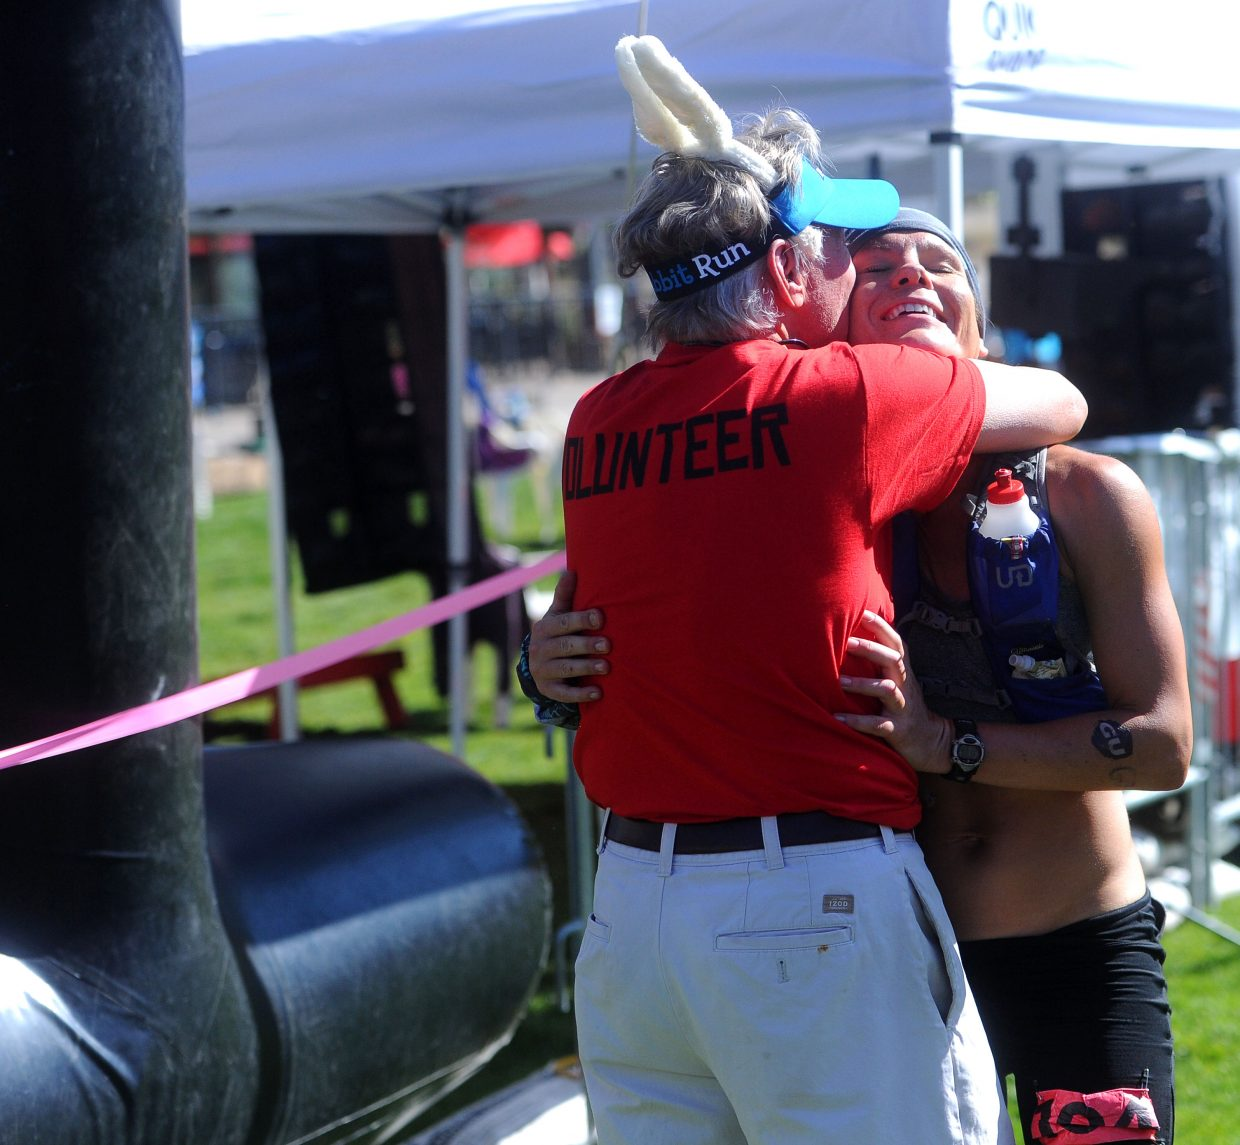 Michele Yates from Conifer embraces race director Fred Abramowitz after winning the hare division of the Steamboat Springs Run Rabbit Run 100-mile race on Saturday, Sept. 15.